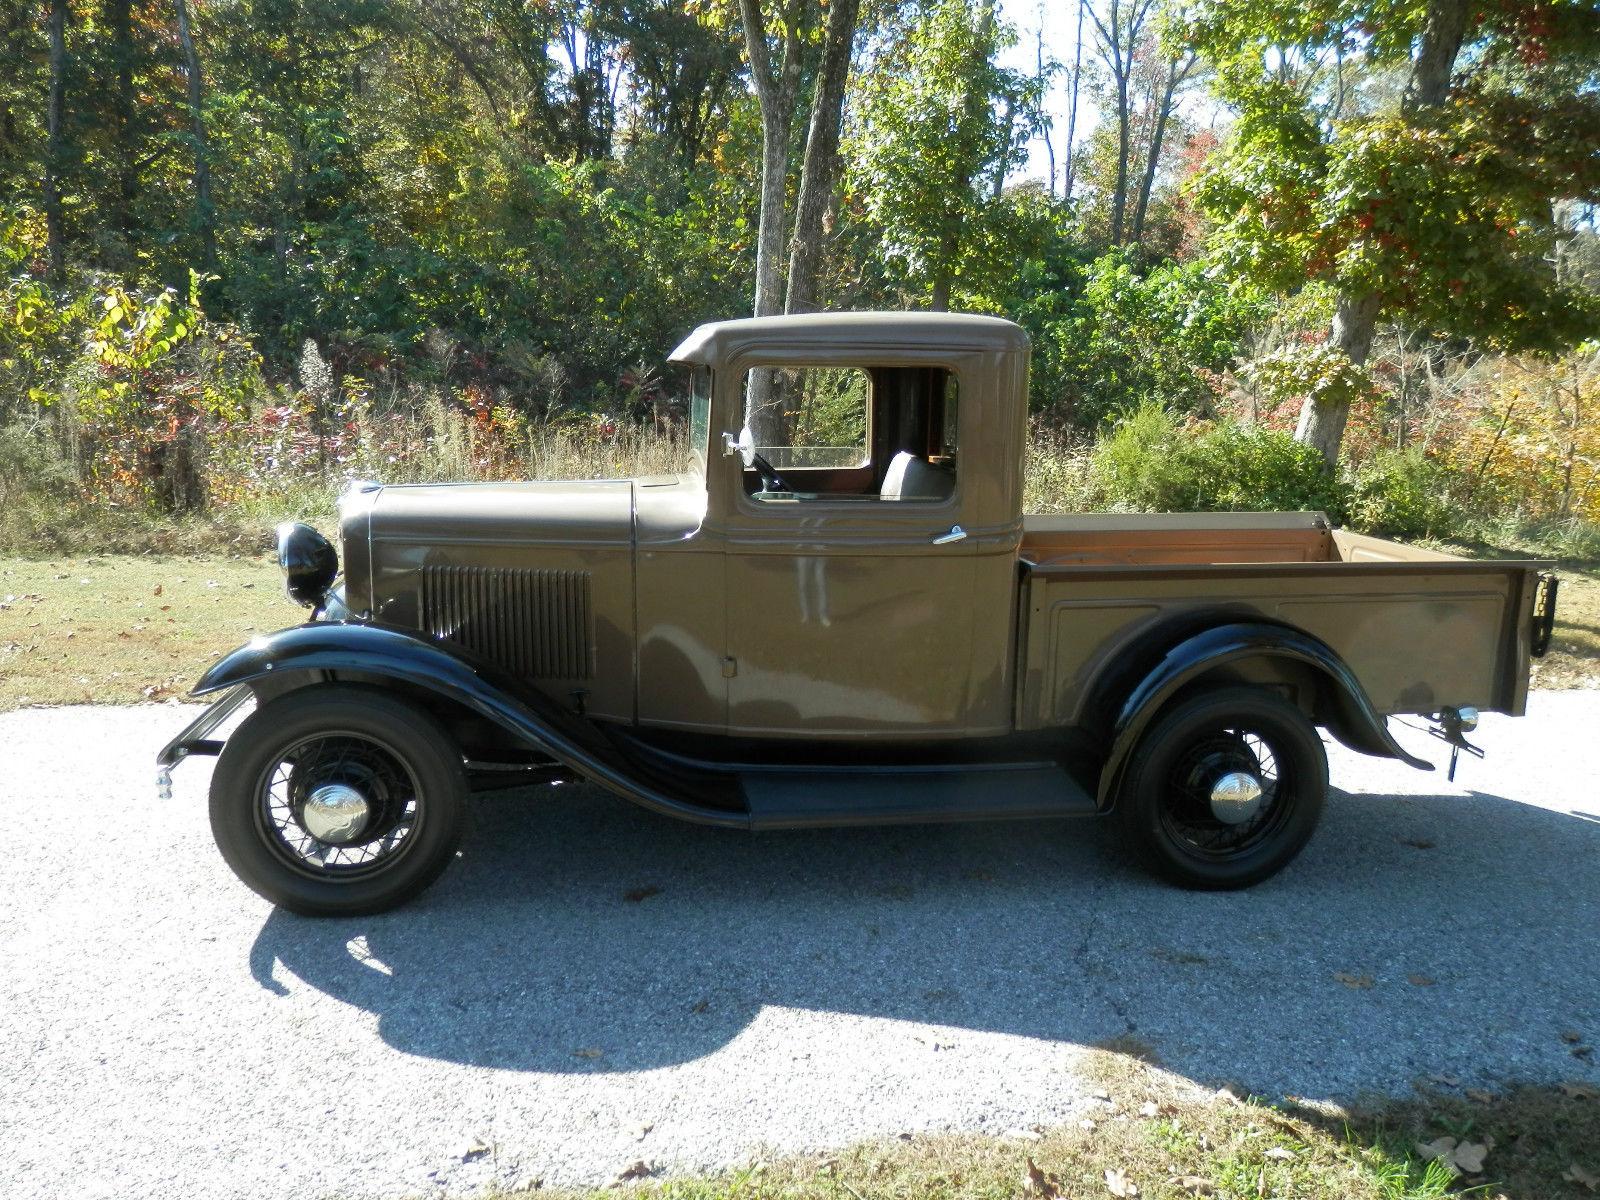 1932 FORD PICKUP RESTORED CUSTOM CLASSIC STREET ROD HOT SHOW NICE ...